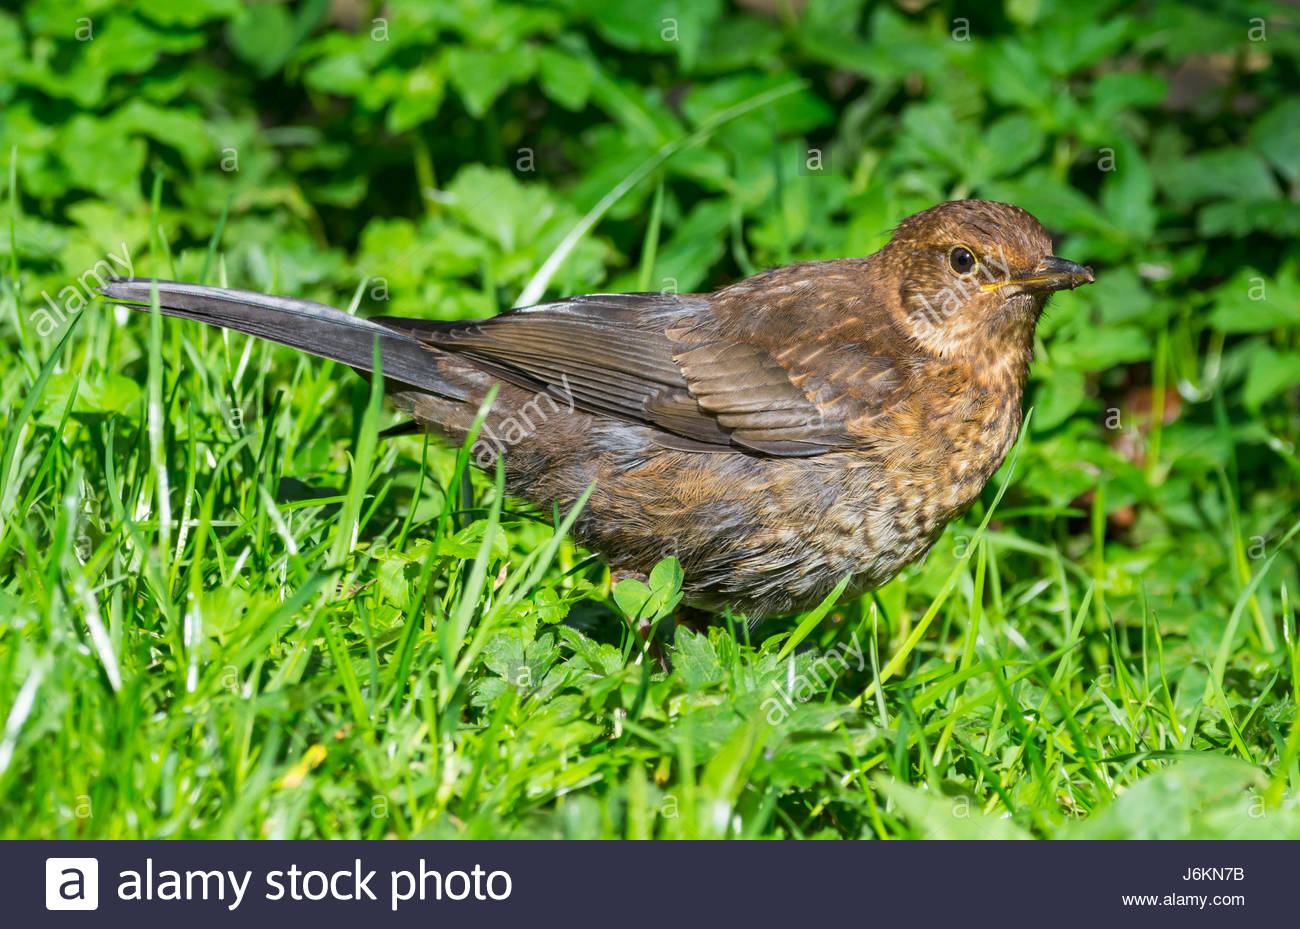 Song Thrush (Turdus philomelos) standing on grass in late Spring in West Sussex, England, UK. - Stock Image